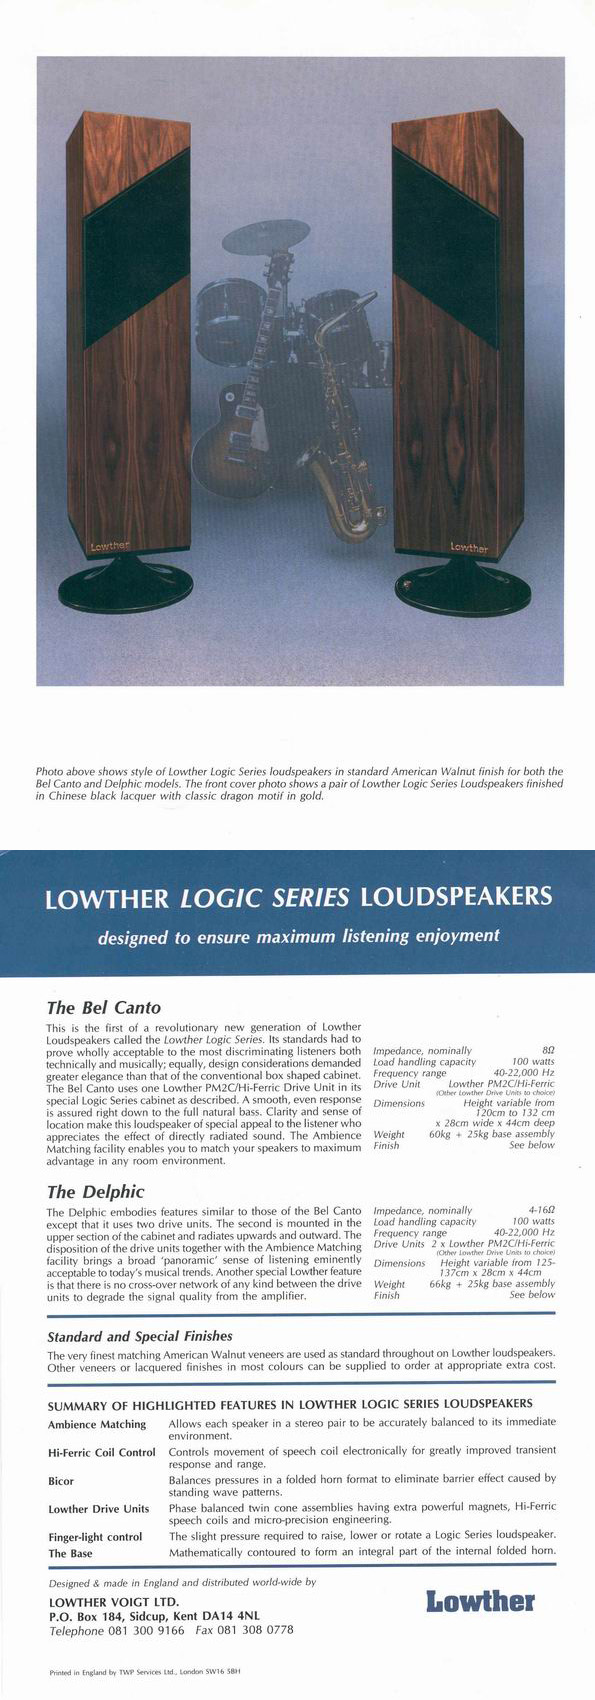 Lowther Loudspeaker Systems